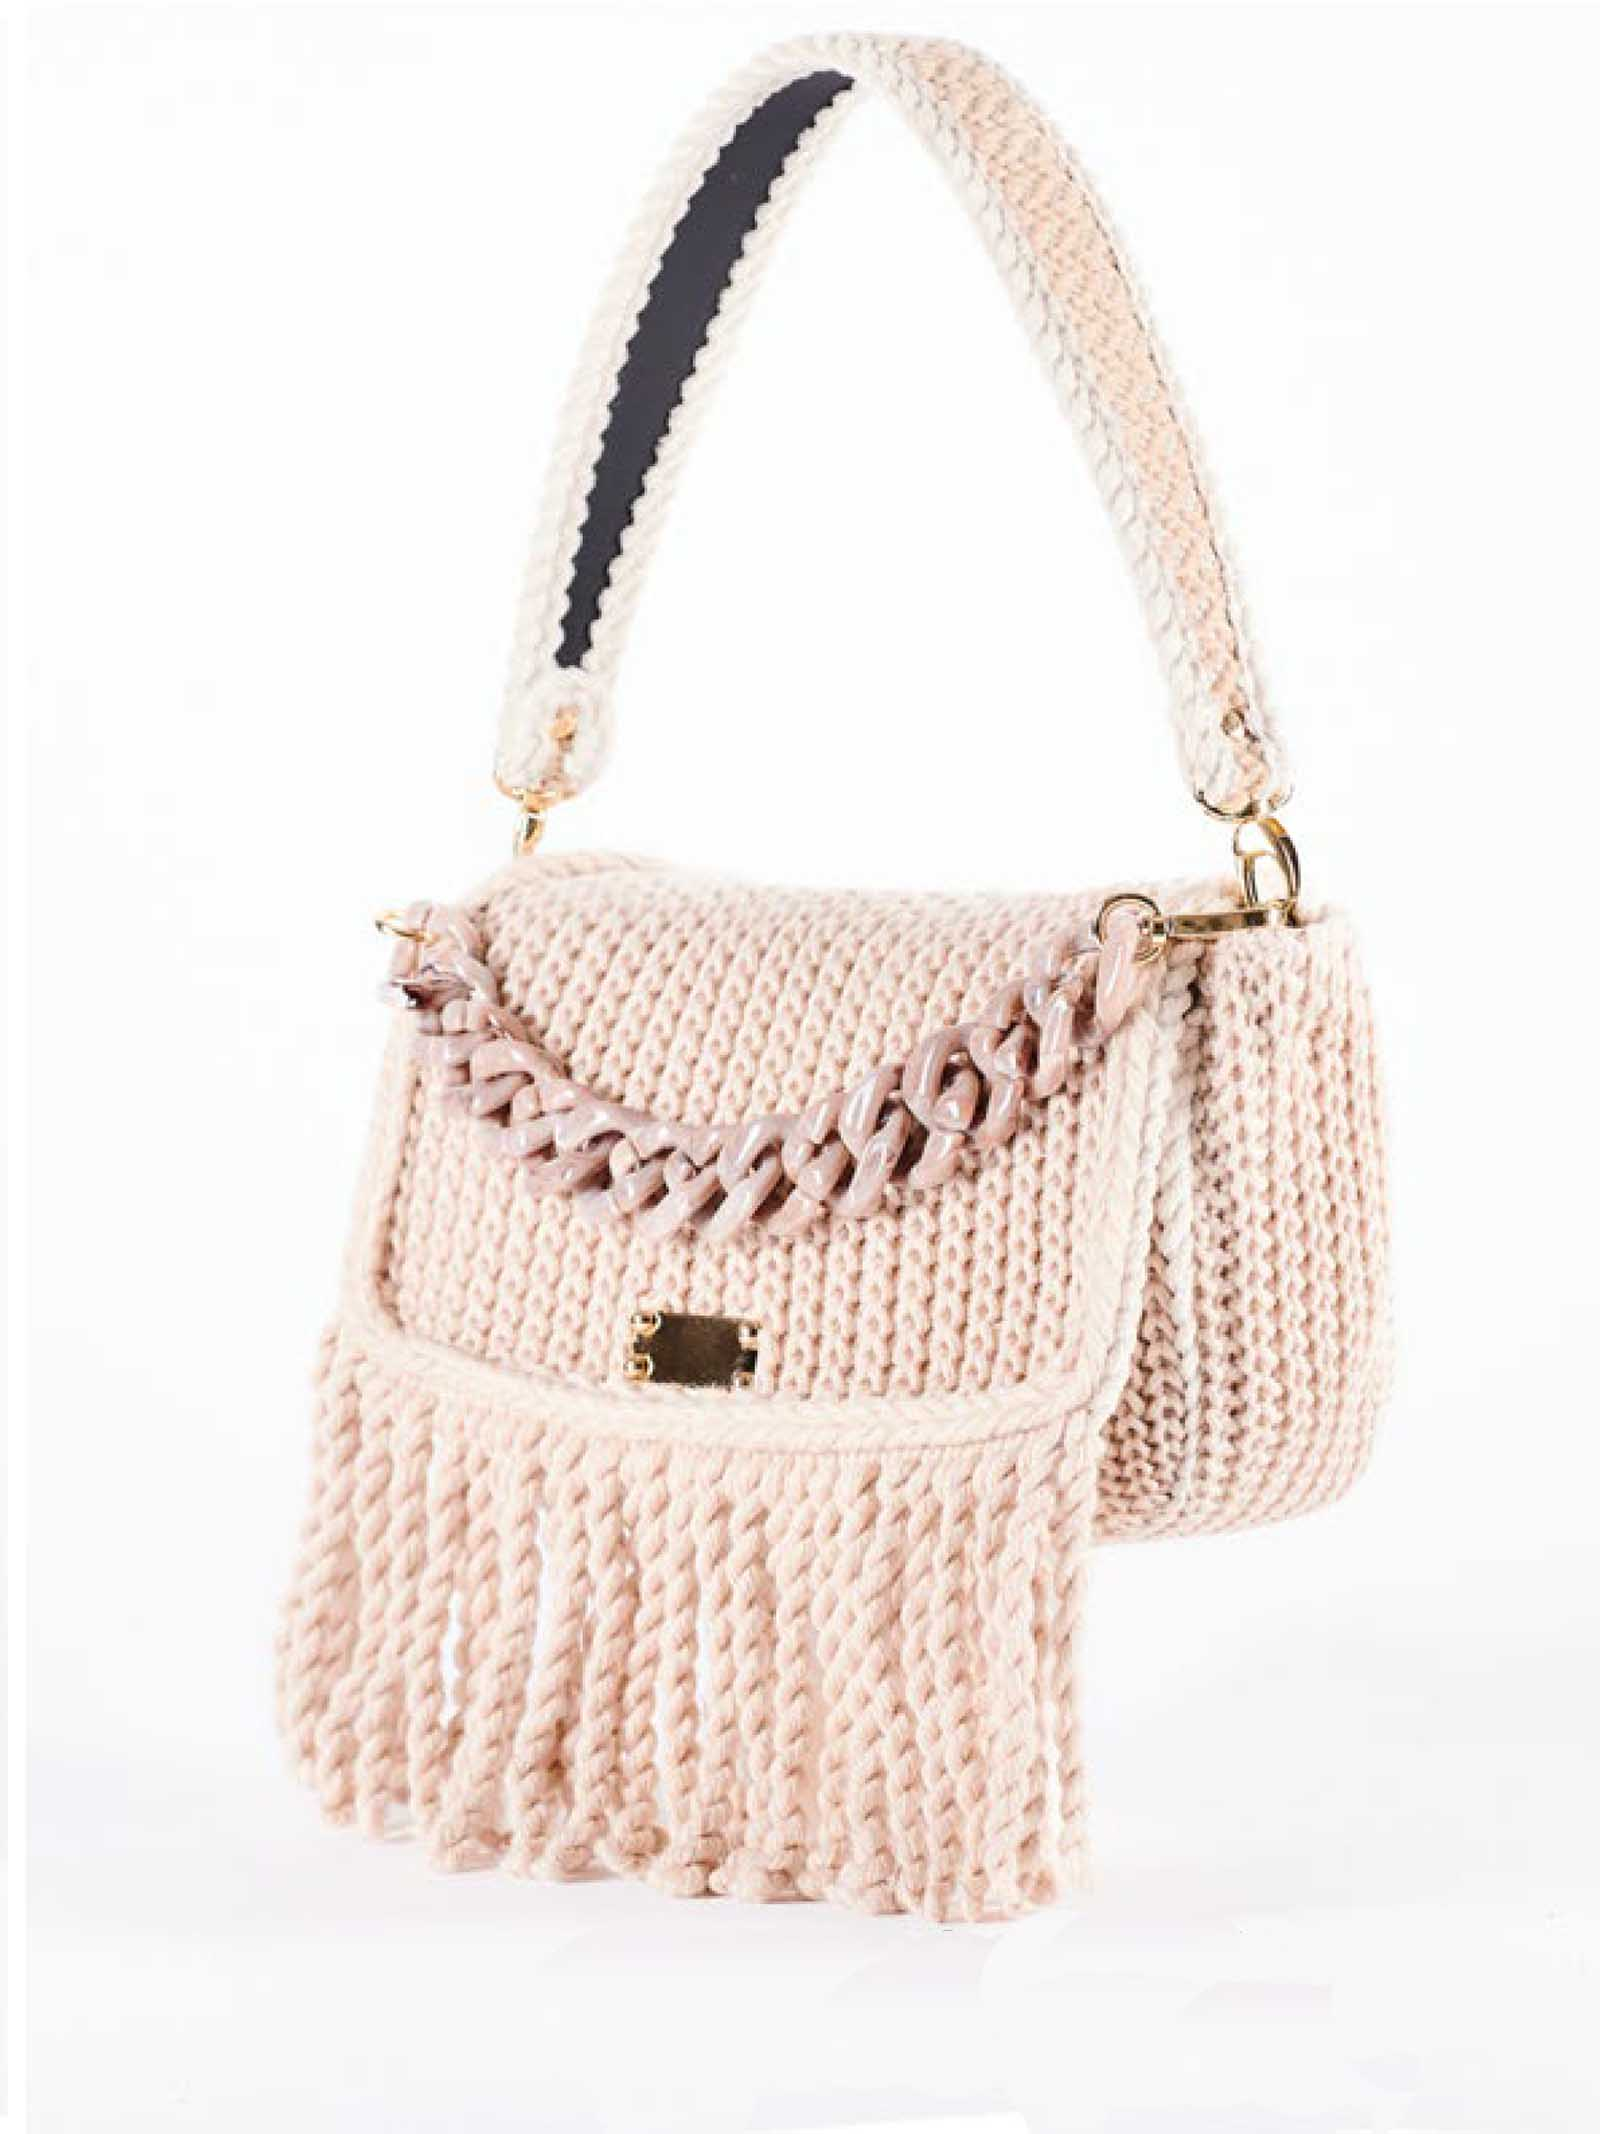 Women's Small Clutch Shoulder Bag Cozy in Cream Wool With Shoulder Strap and Matching Resin Chain Via Mail Bag | Bags and backpacks | AMYB01